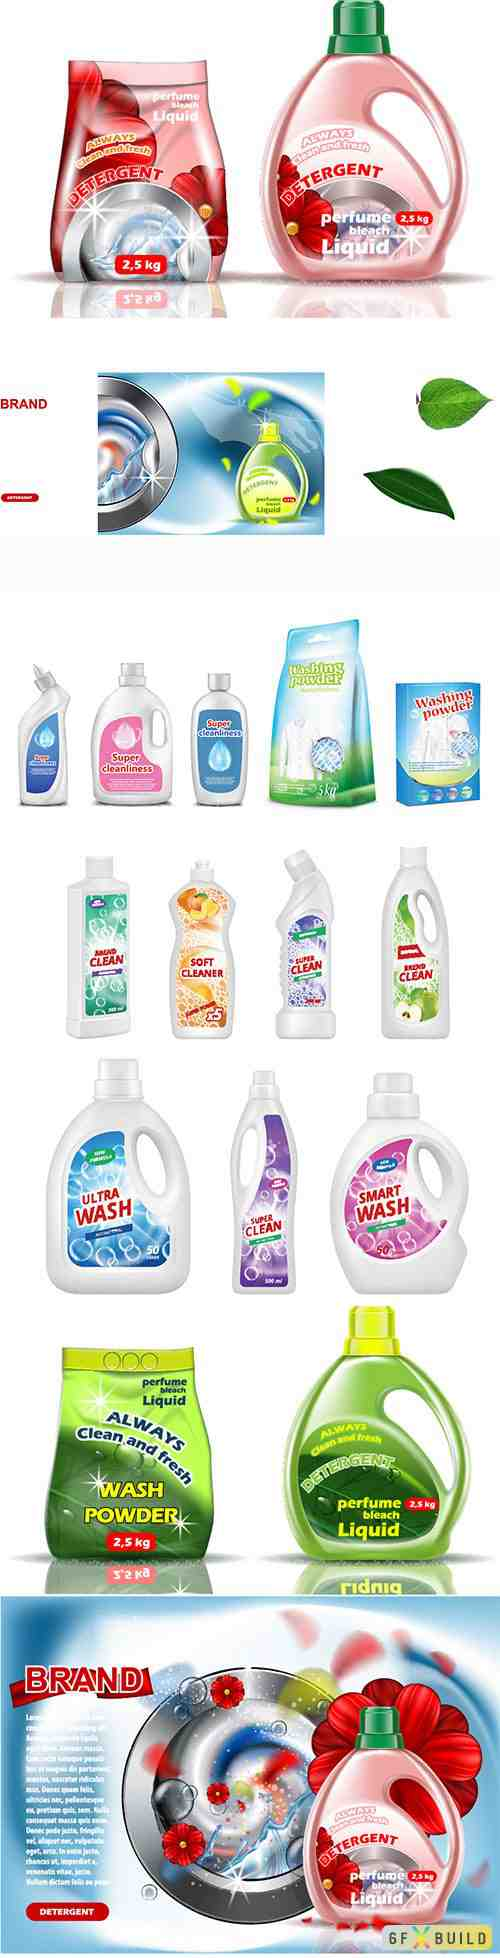 Washing powder liquid advert, on wash machine background